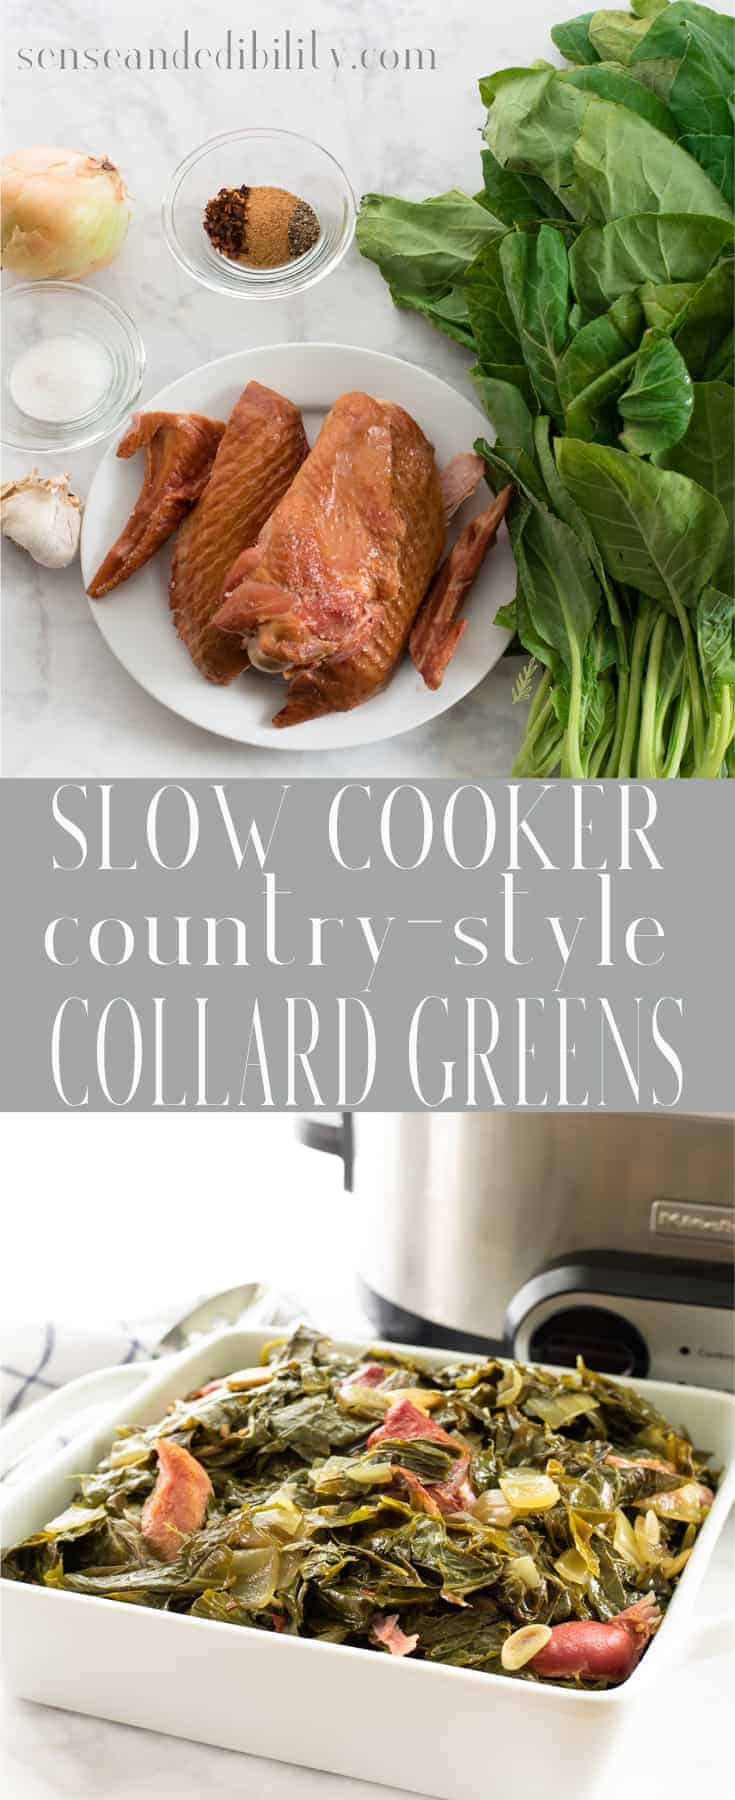 Sense & Edibility's Slow-Cooker Country Style Collard Greens Pin